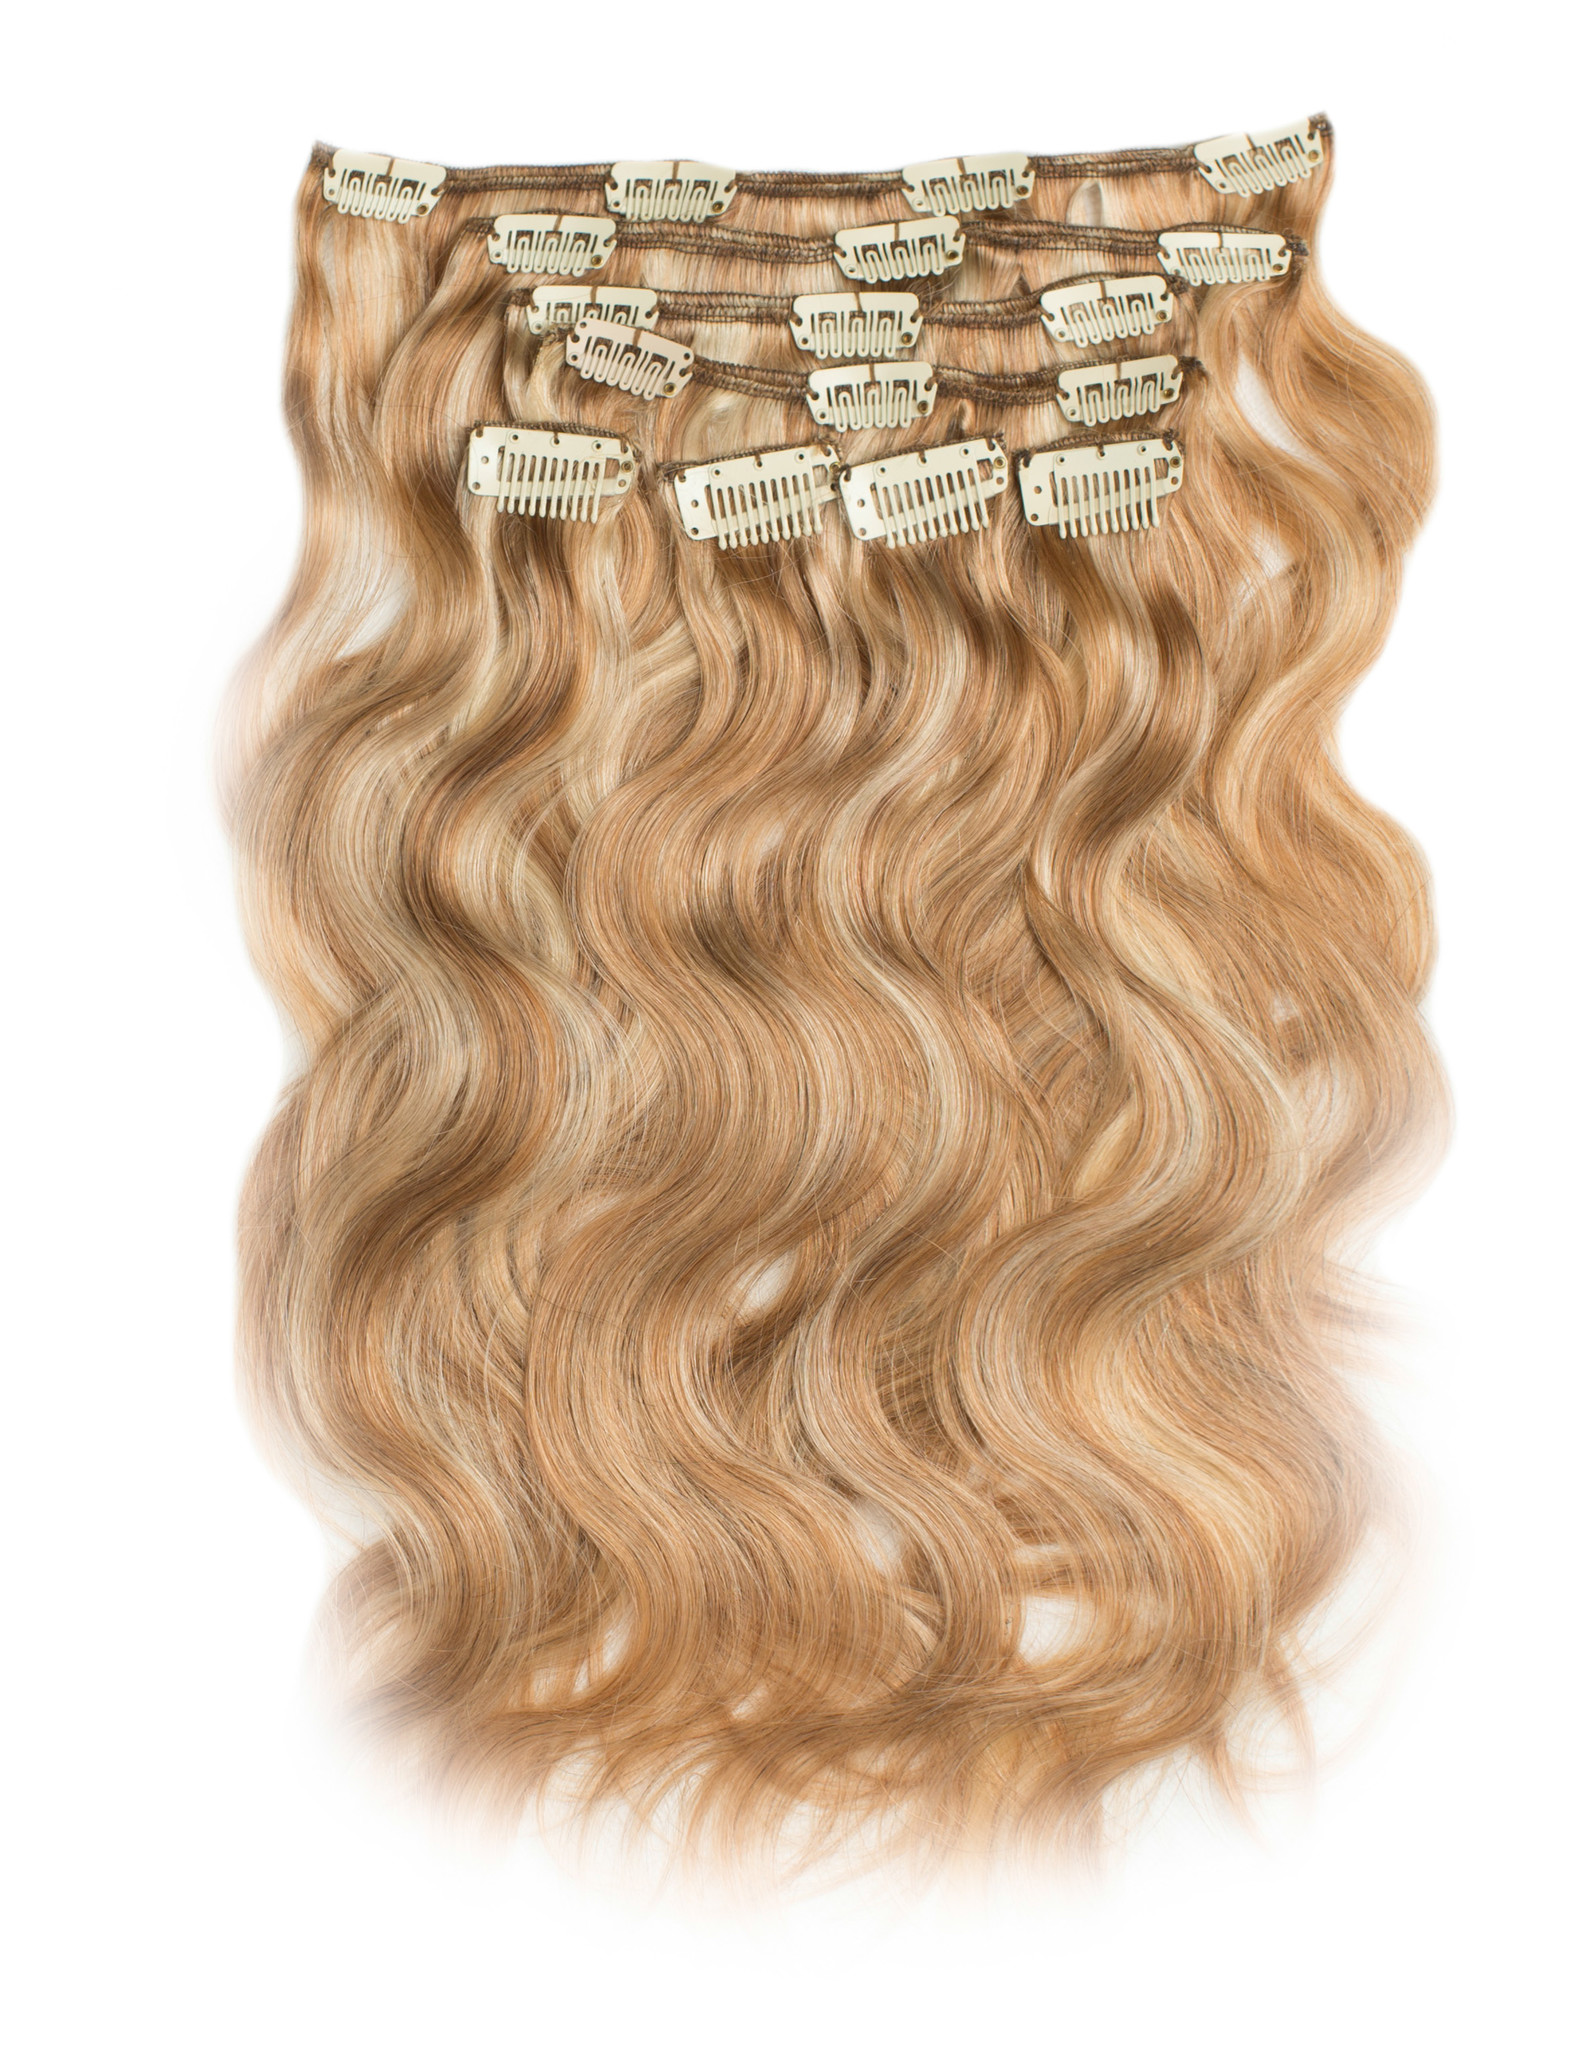 RedFox Clip-in Extensions - Body Wave - 45cm